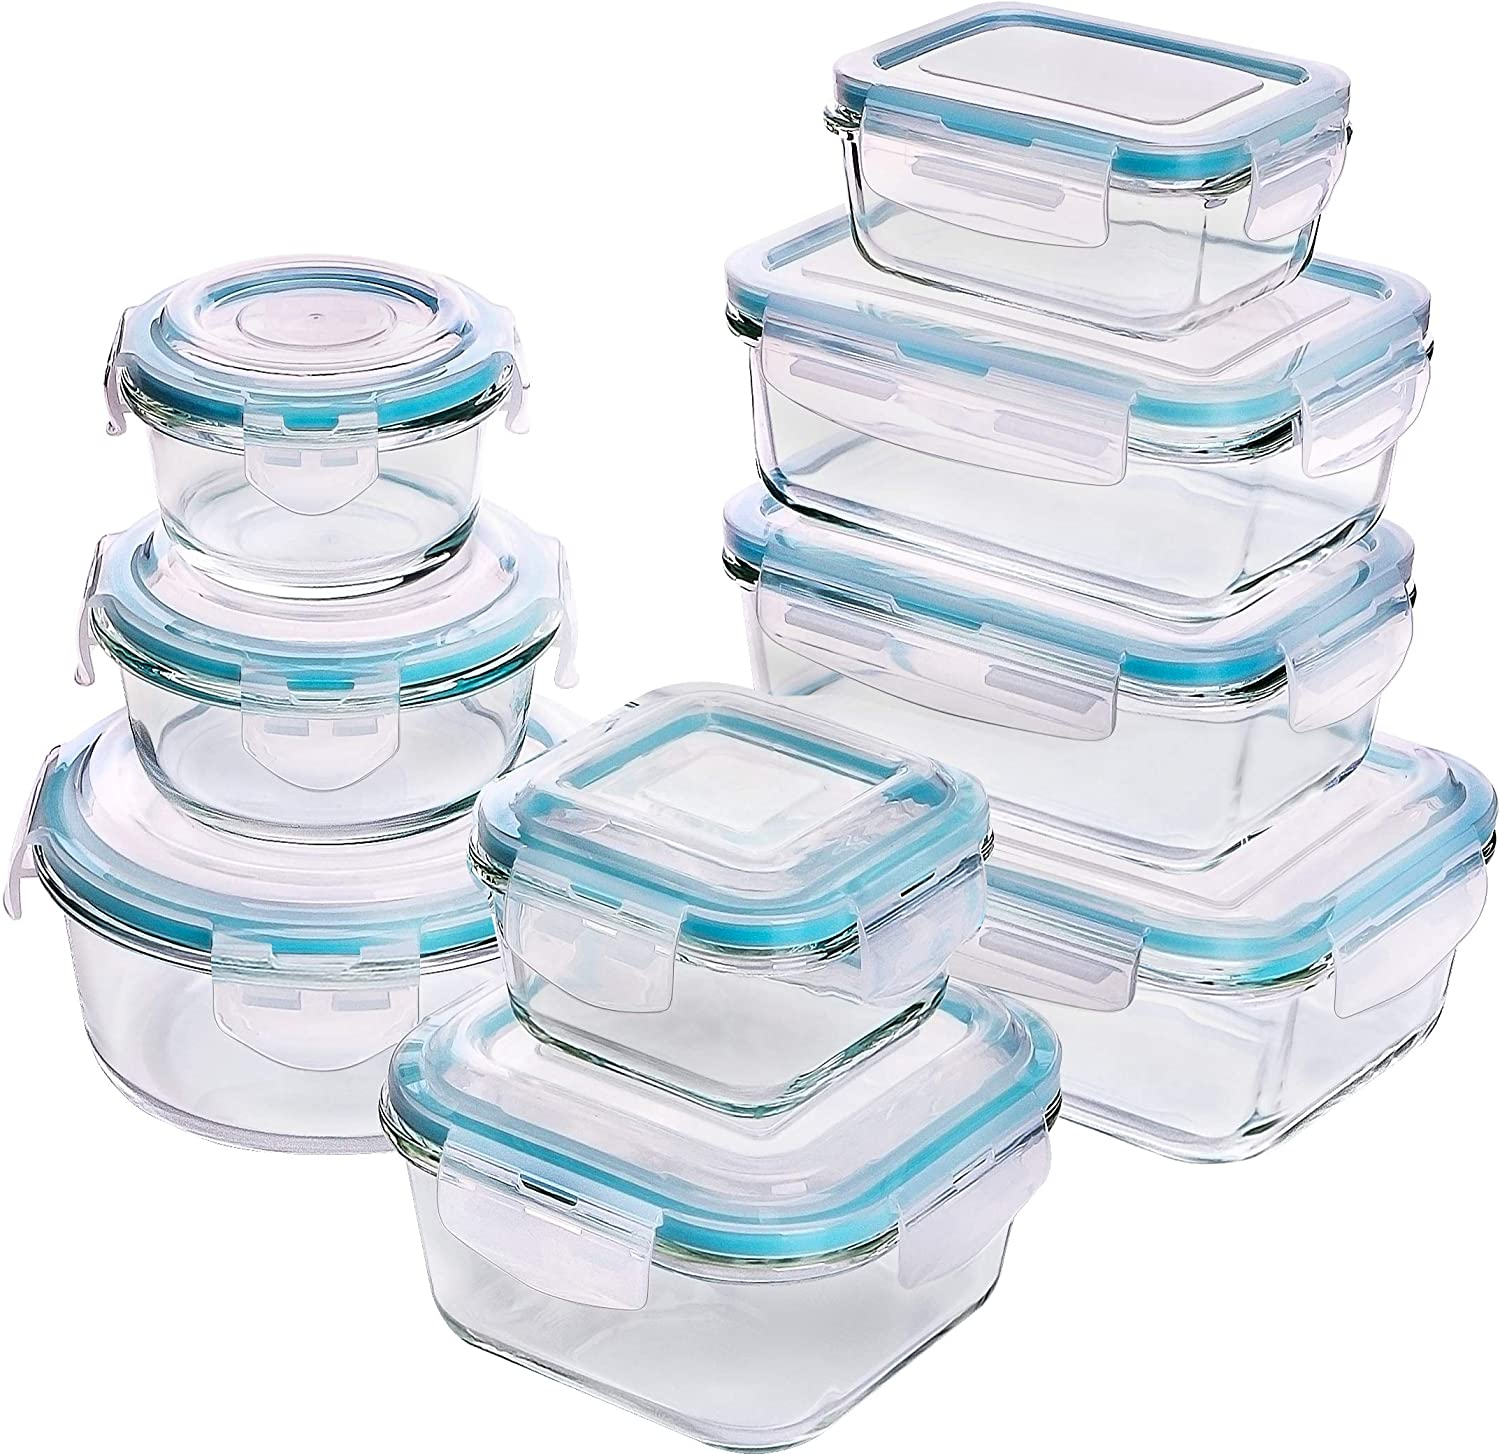 20-Piece Storage Set with Mixed Blue Lids